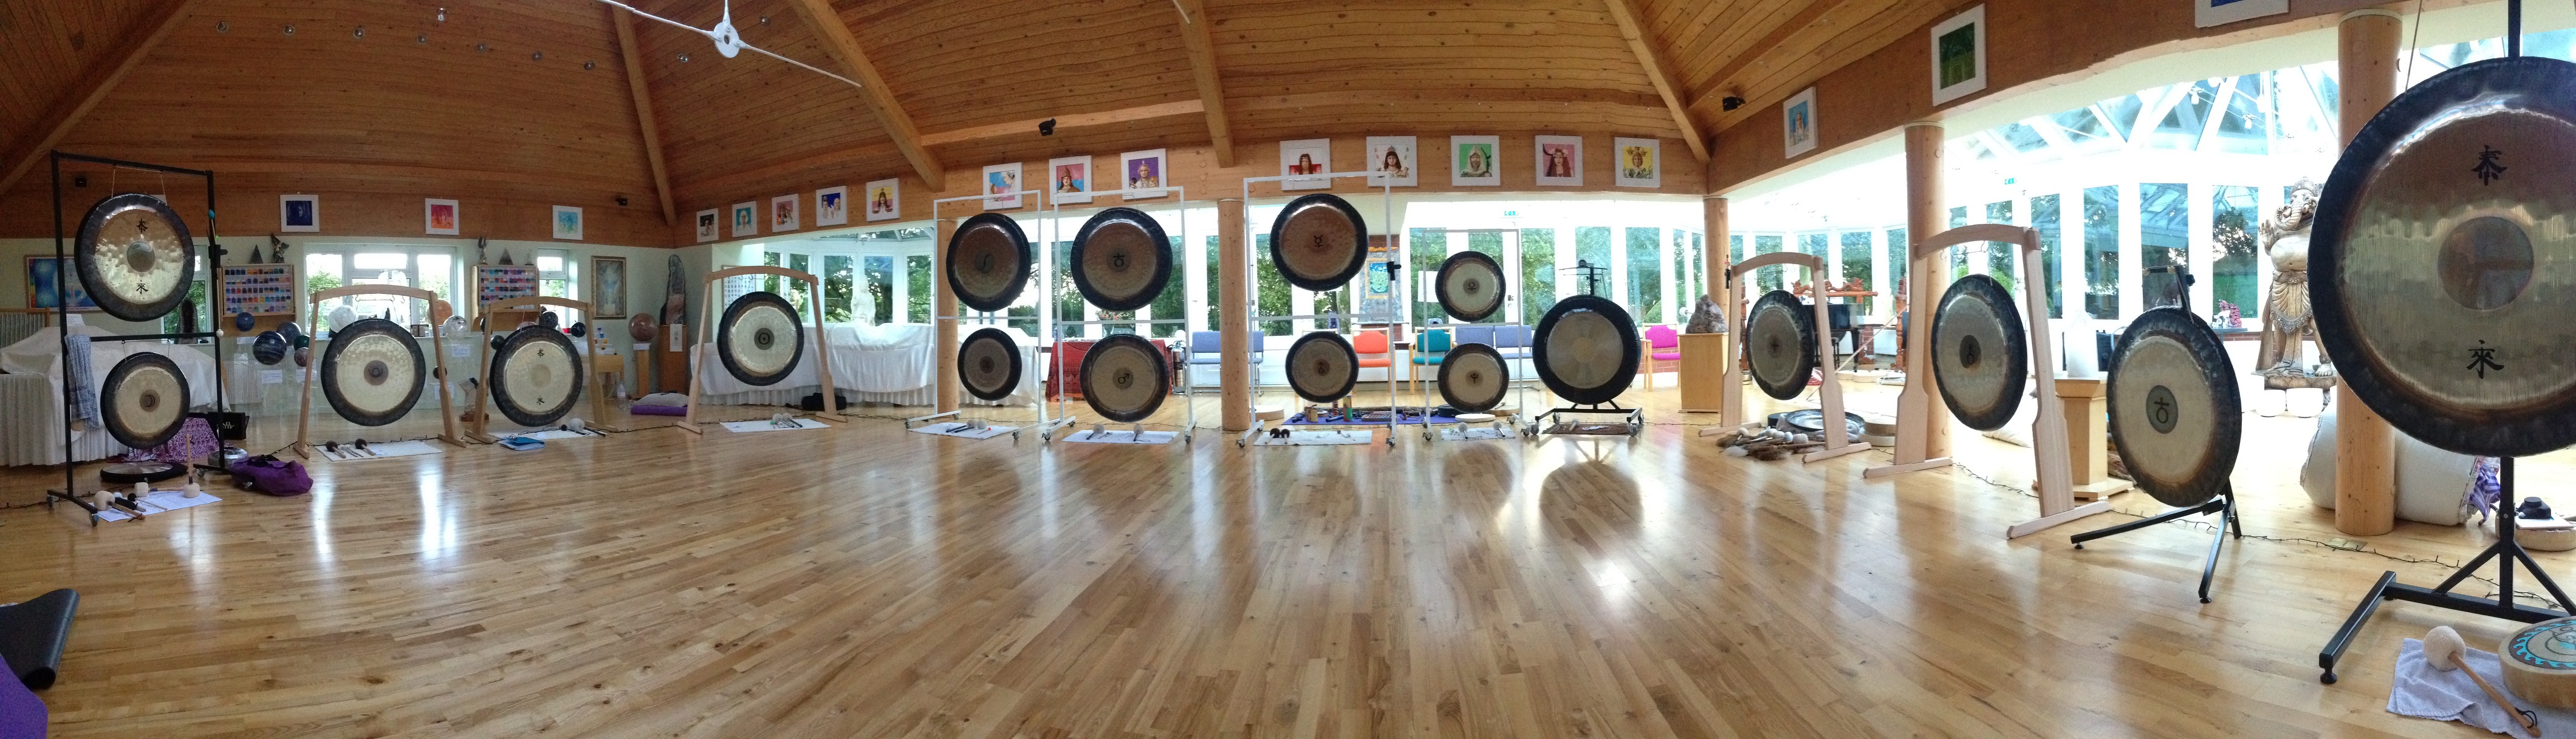 LINCOLNSHIRE - GONG MASTER PRACTITIONER TRAINING - HARMONY OF THE SPHERES RESIDE